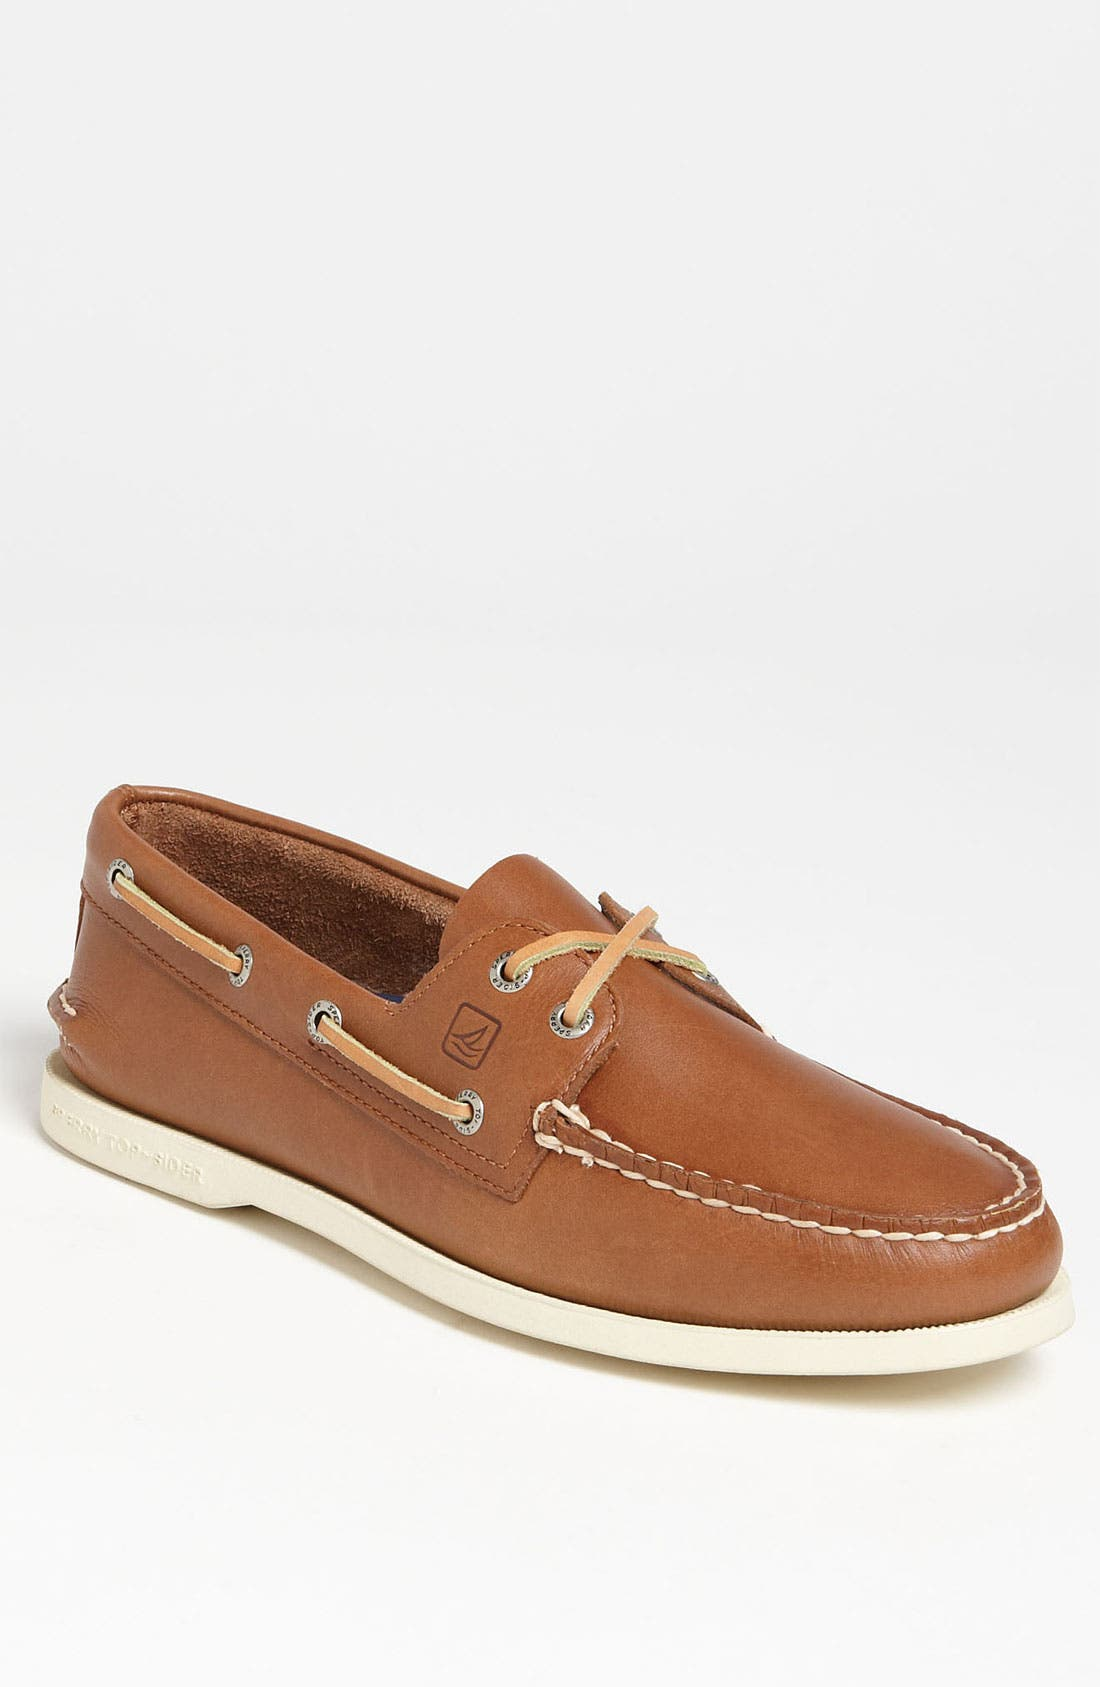 Main Image - Sperry 'Authentic Original' Leather Boat Shoe